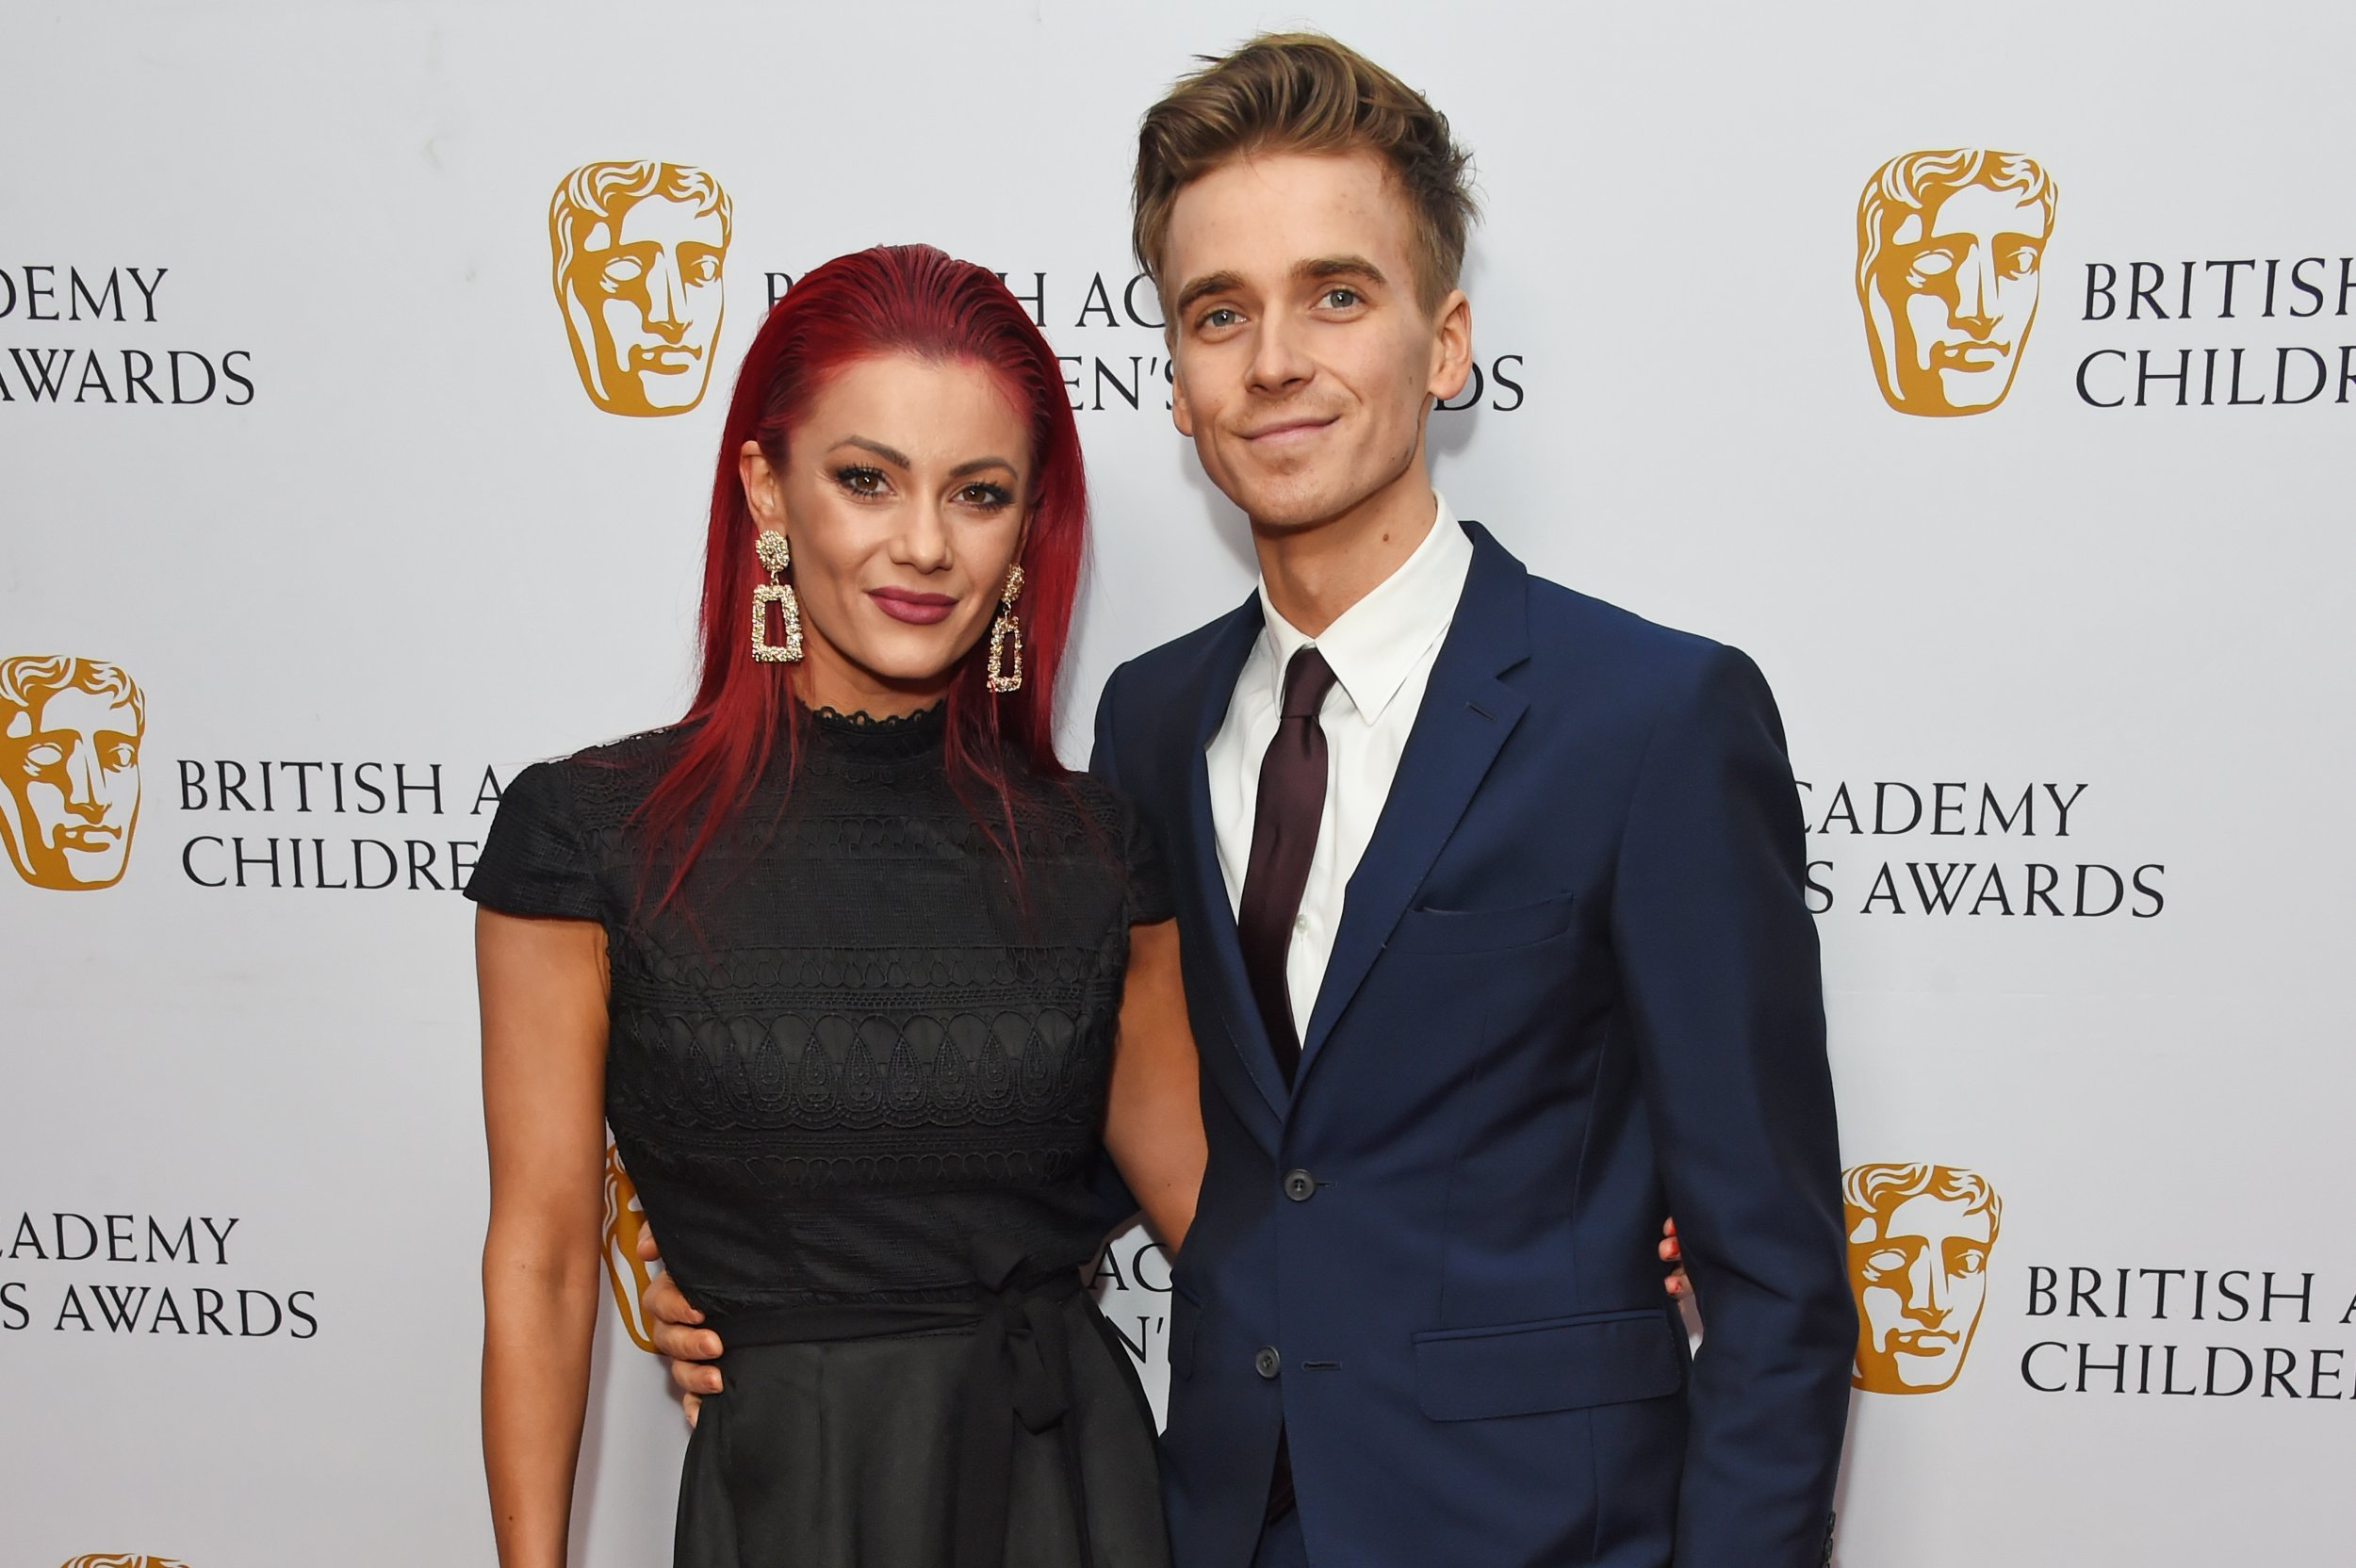 LONDON, ENGLAND - NOVEMBER 25: Dianne Buswell and Joe Sugg attend The British Academy Children's Awards 2018 at The Roundhouse on November 25, 2018 in London, England. (Photo by David M. Benett/Dave Benett/Getty Images)